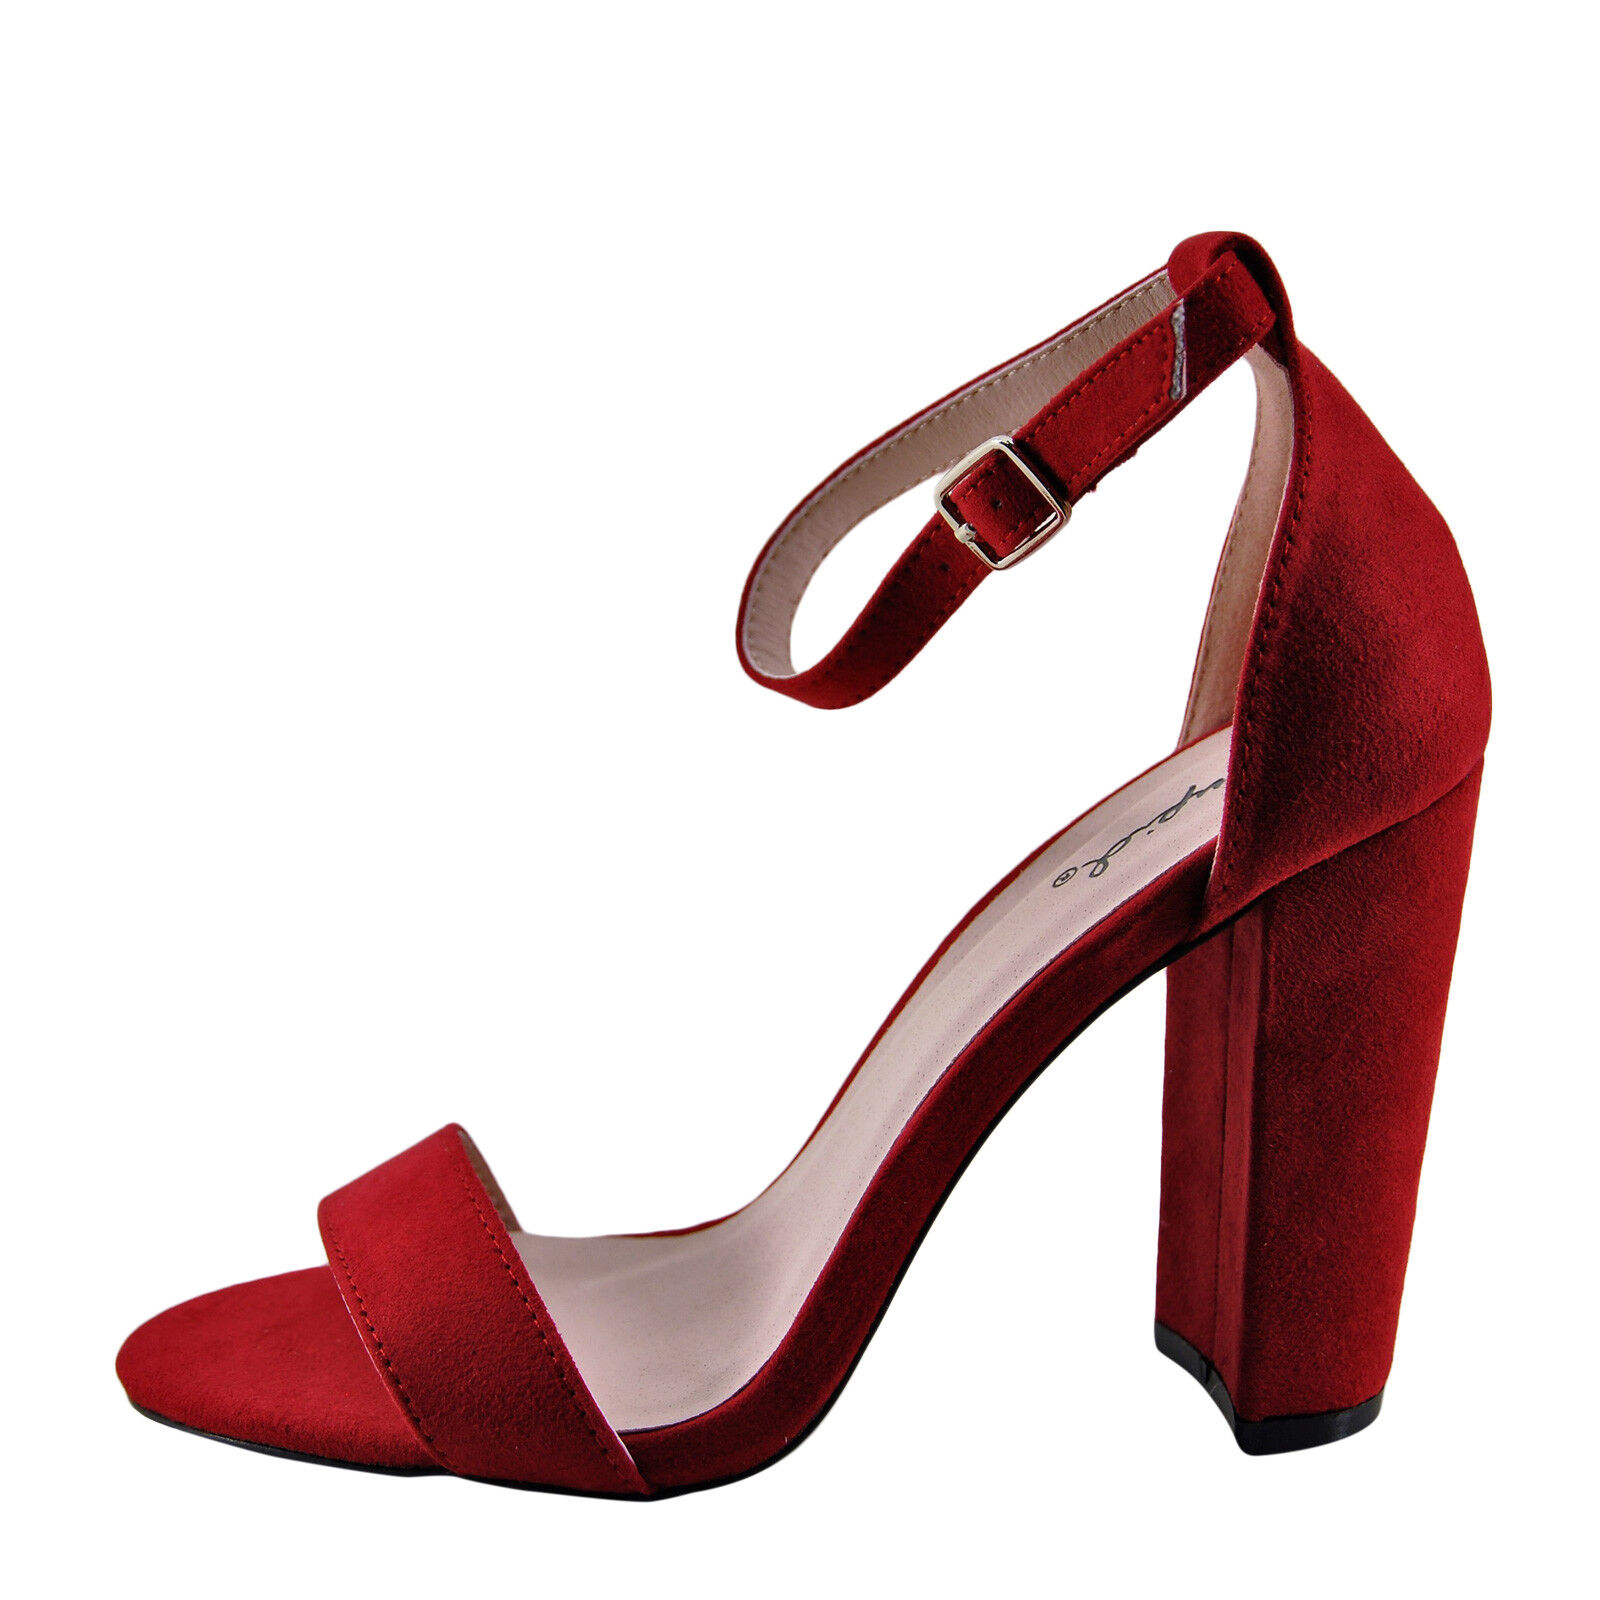 1ce54e75a9b8e9 Qupid Cashmere 01 Red Suede Women s Open Toe Ankle Strap Heel